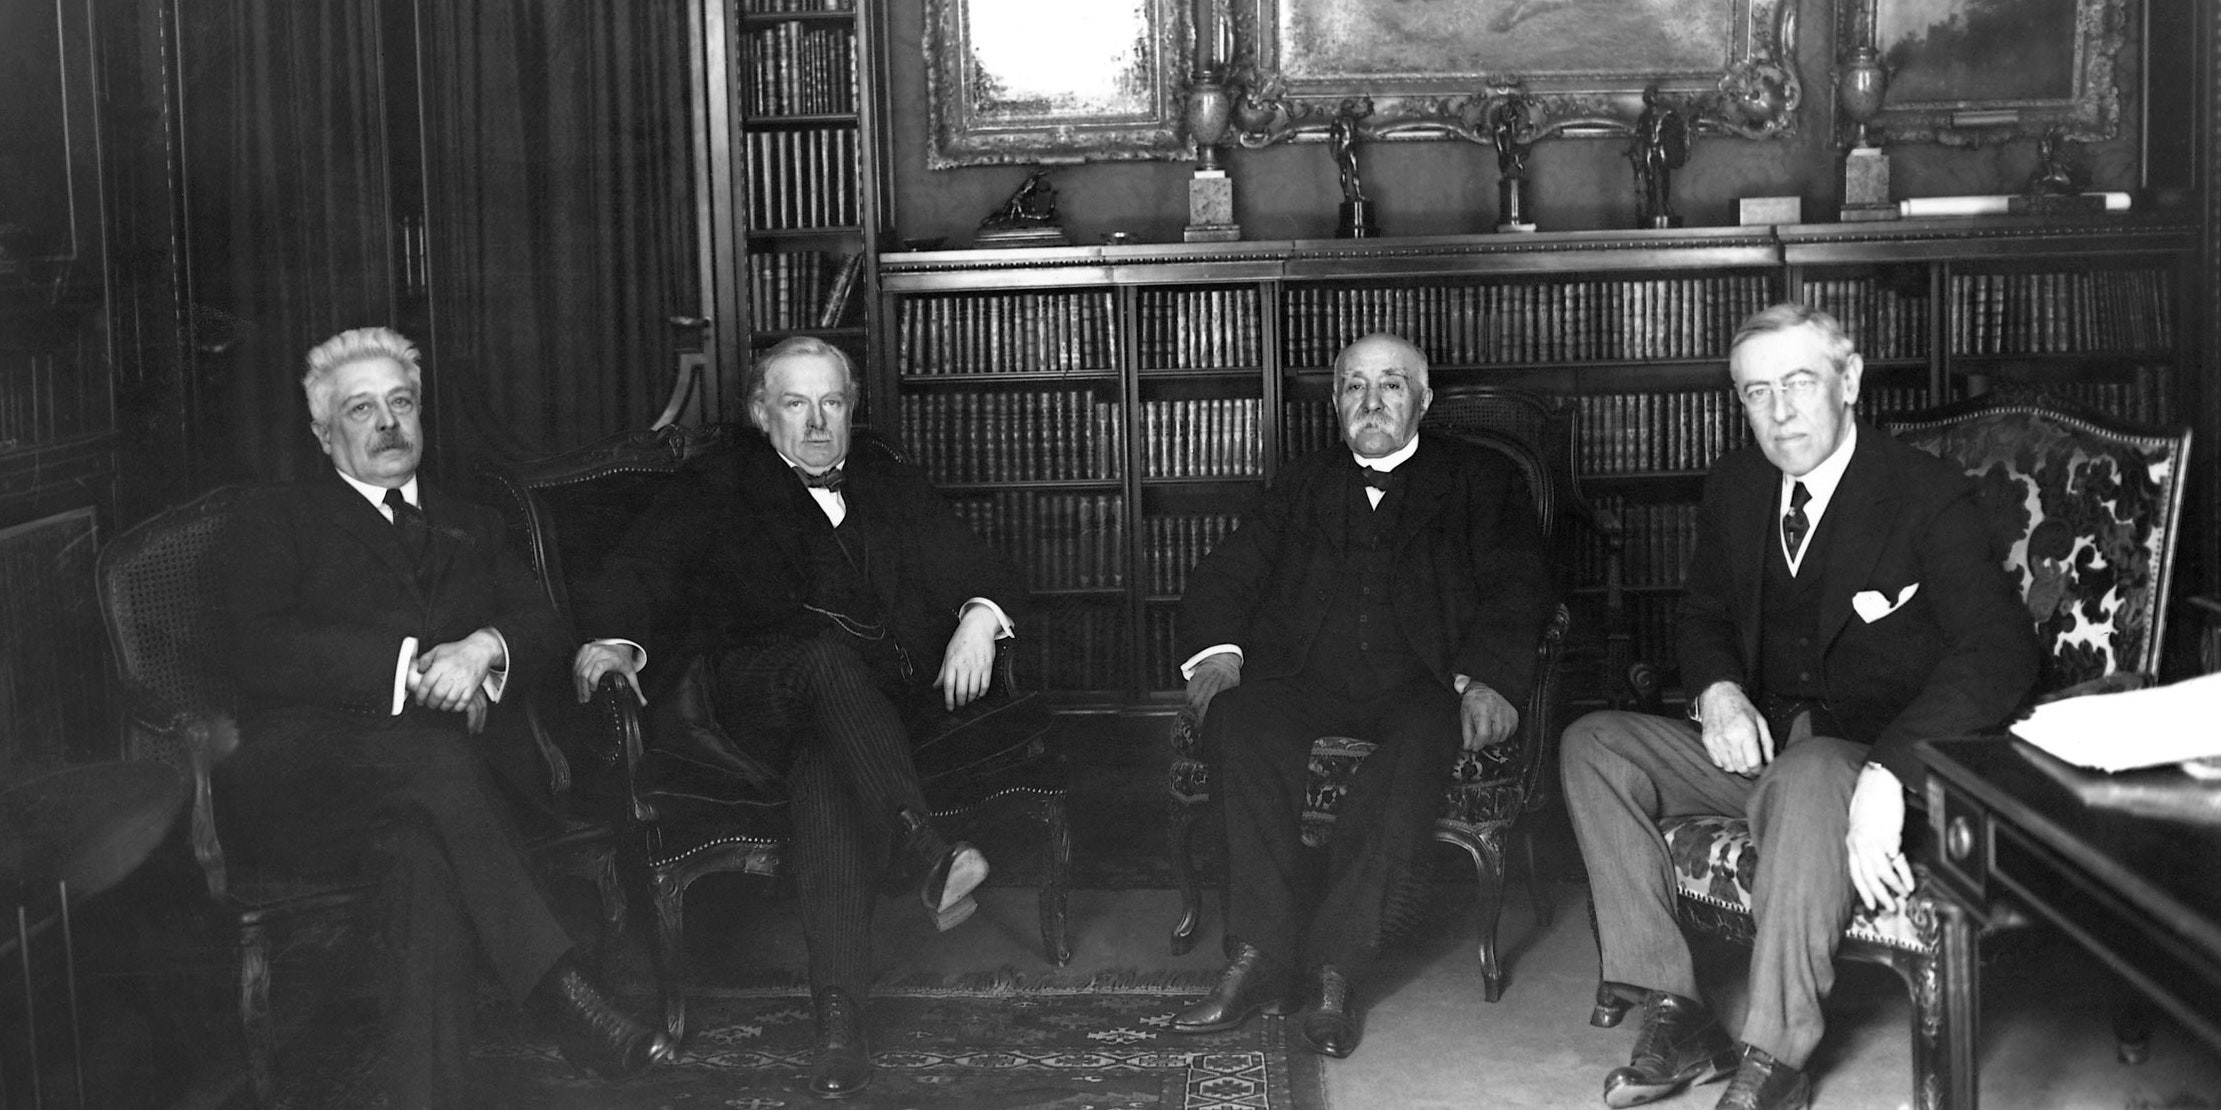 Vittorio Orlando, David Lloyd George, Georges Clemenceau, and Woodrow Wilson meet to discuss the Treaty of Versailles